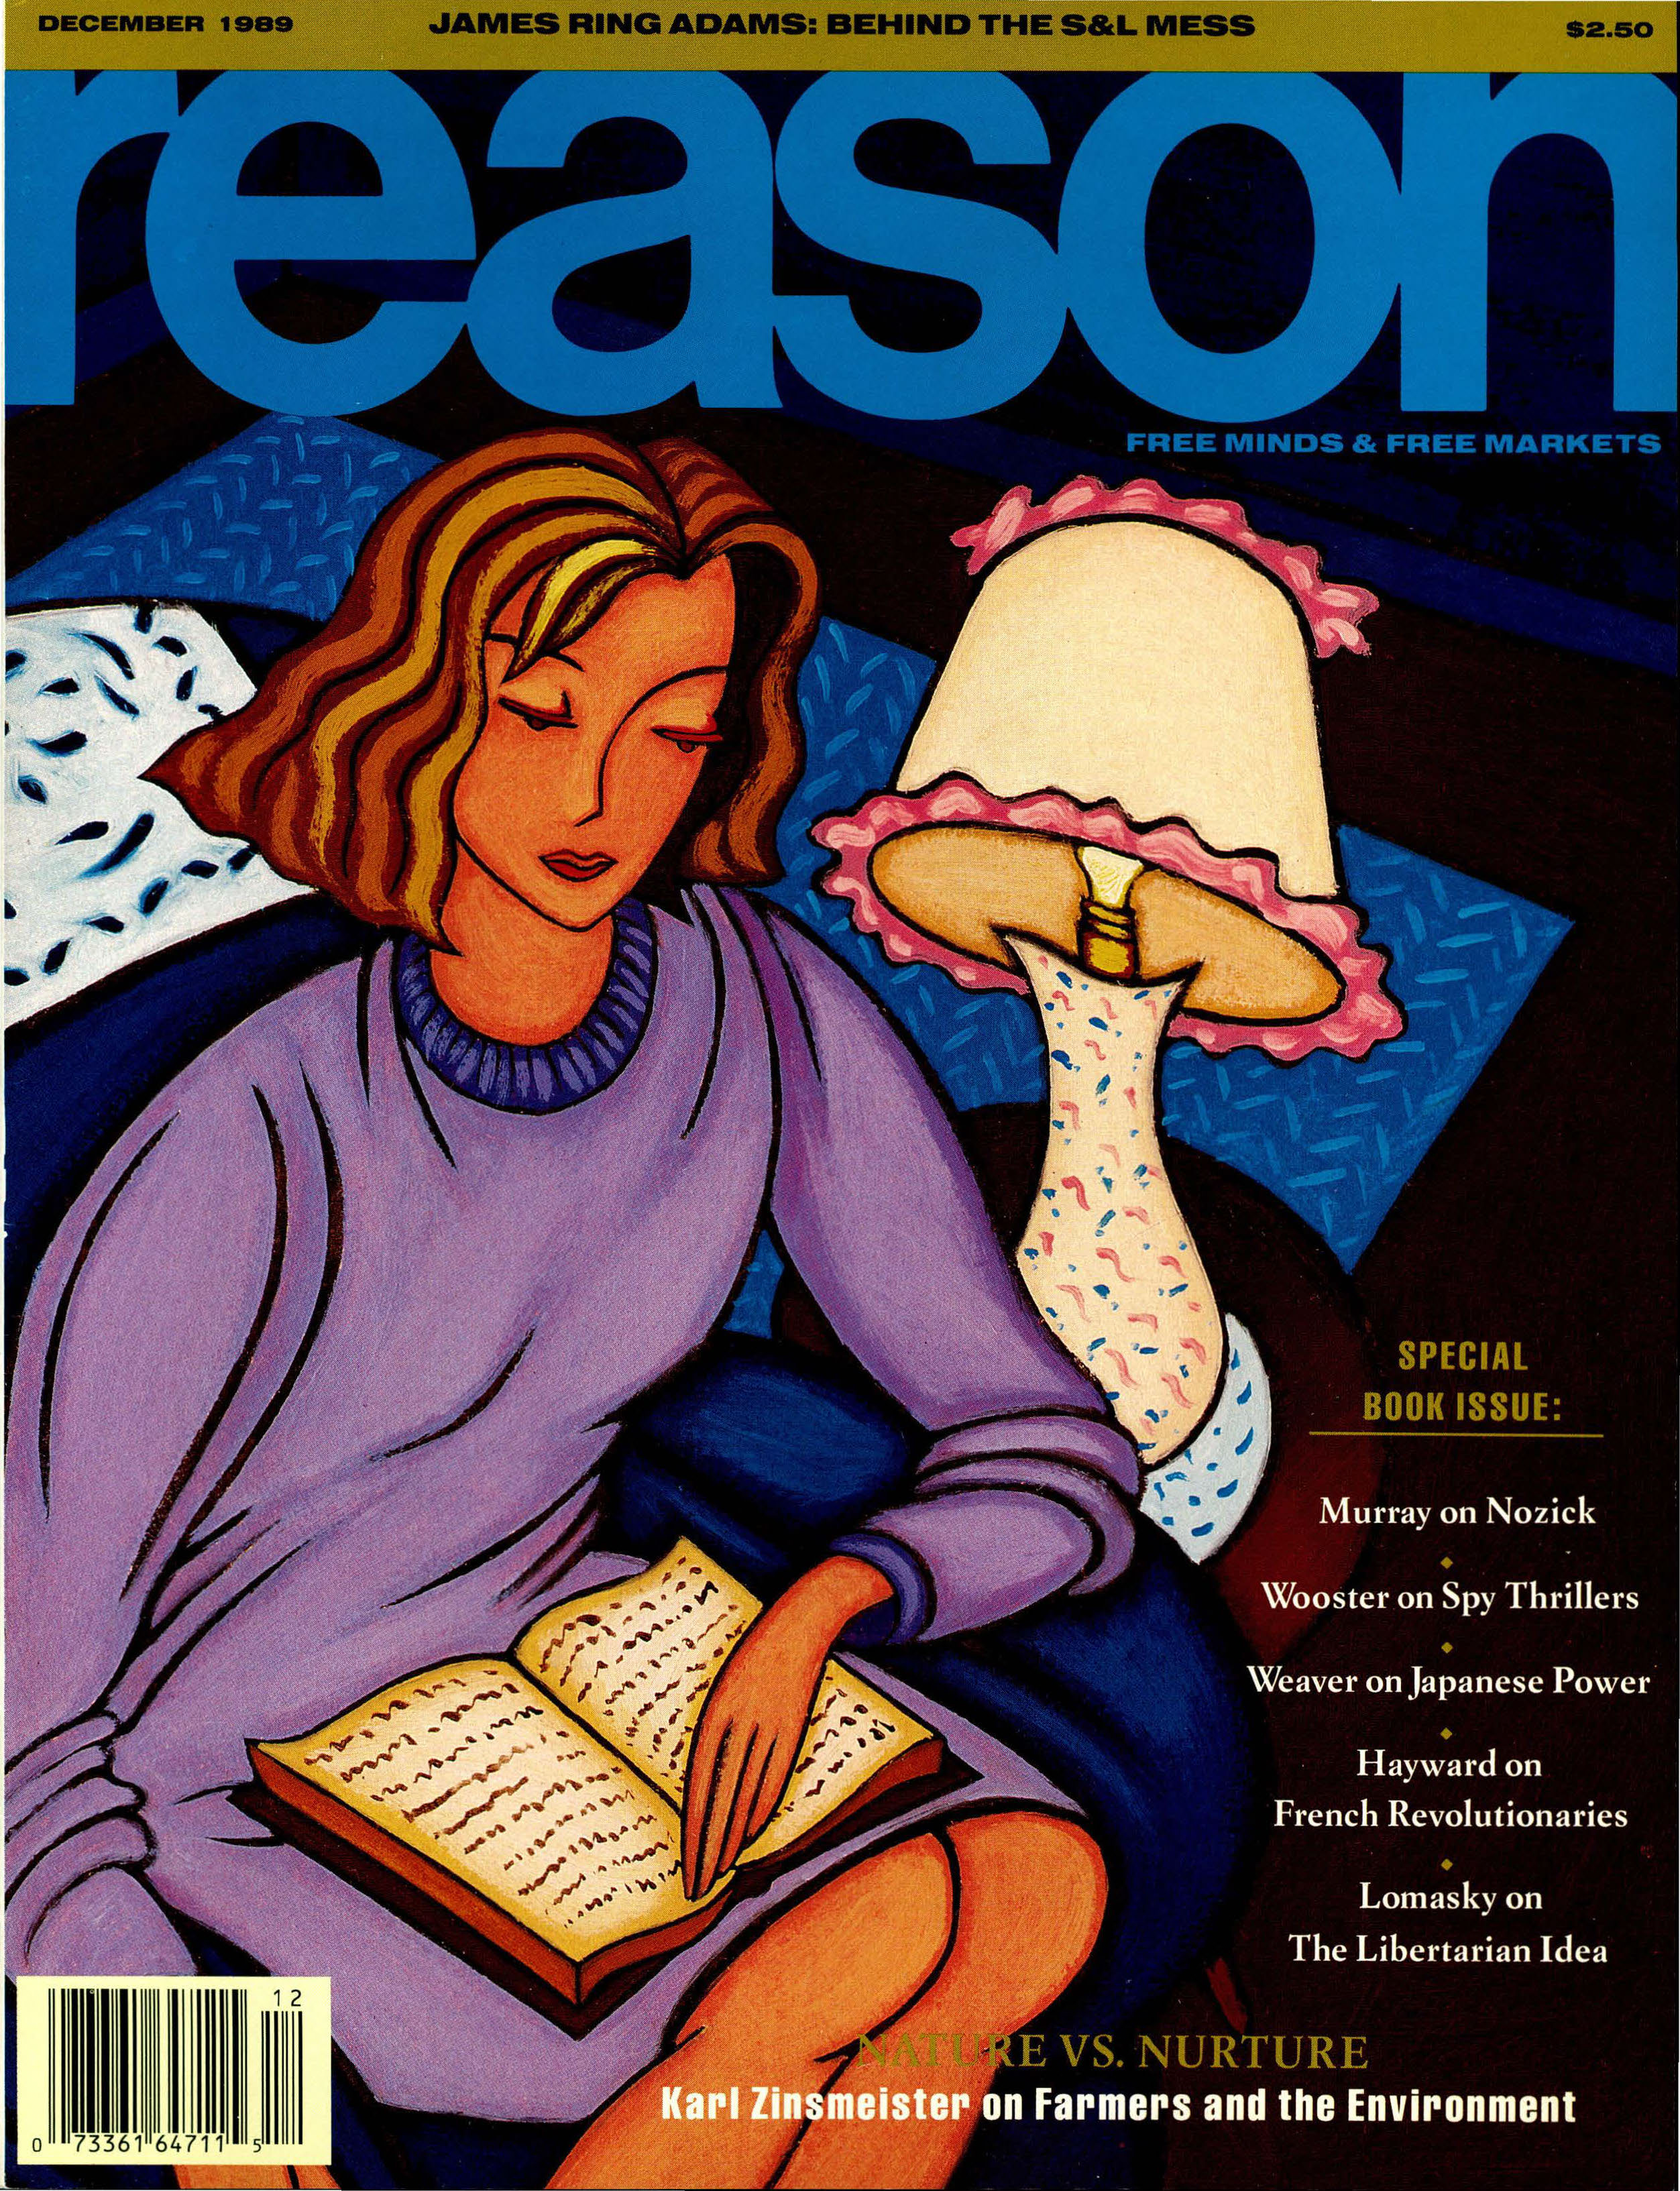 Reason Magazine, December 1989 cover image